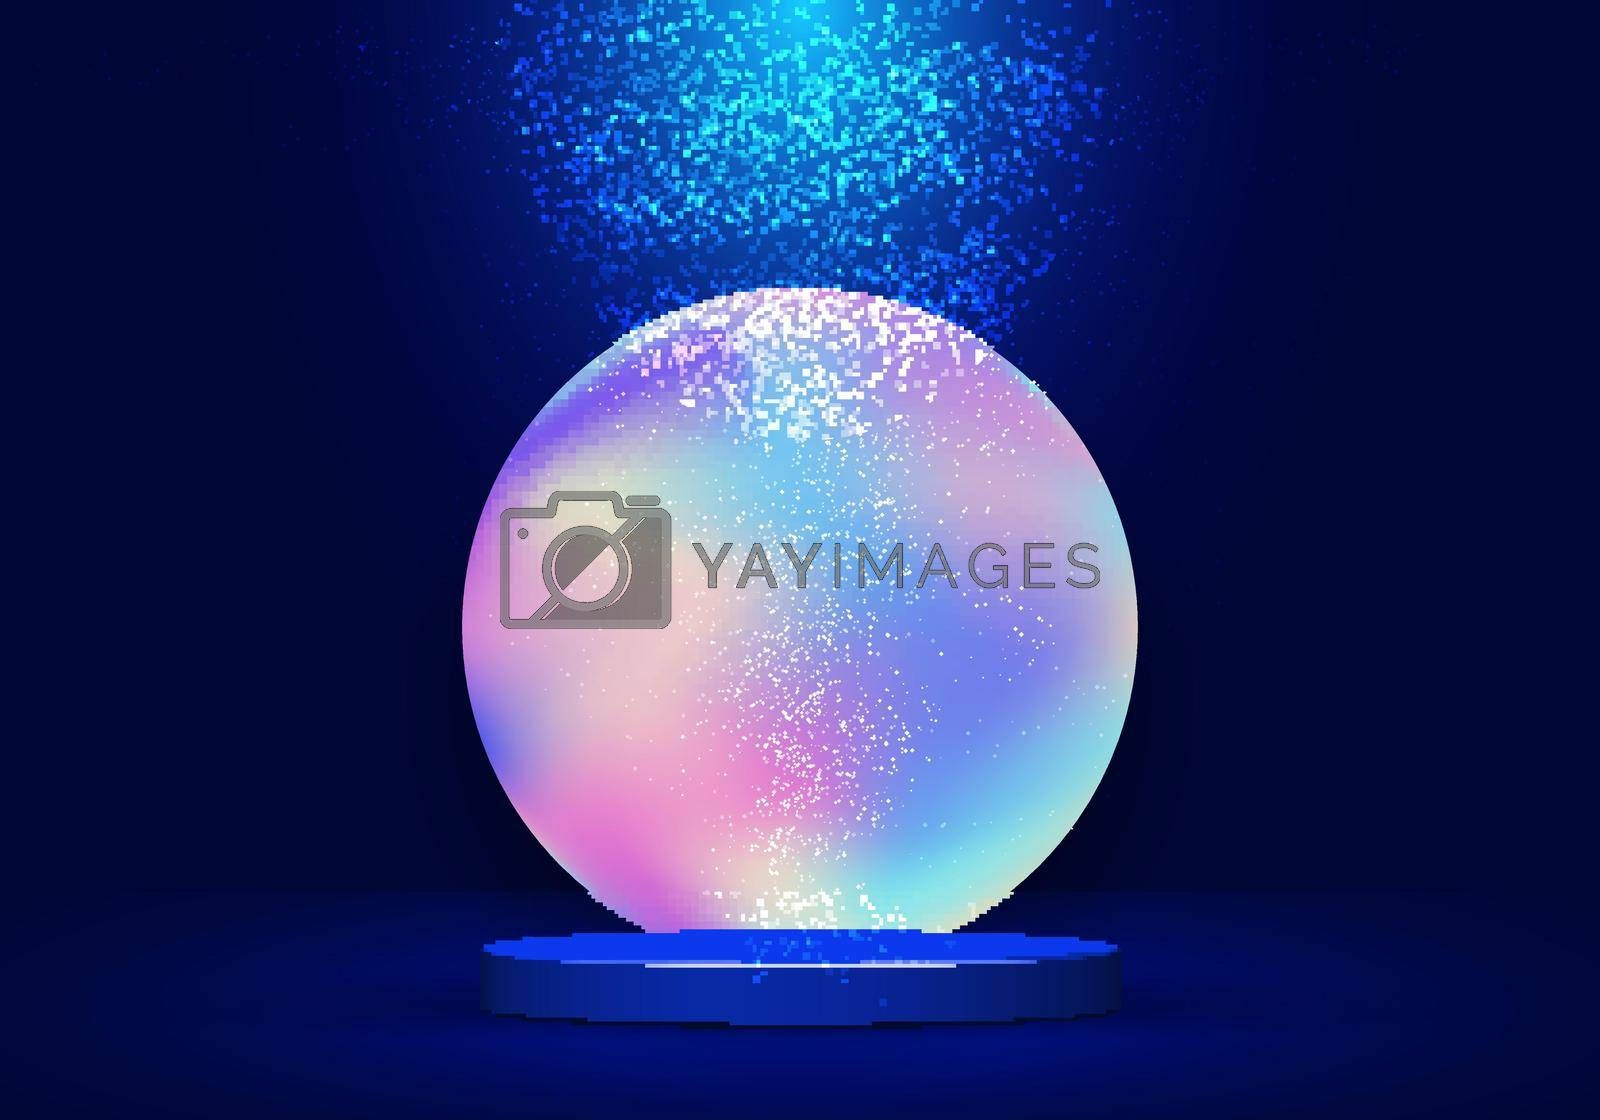 Royalty free image of 3D realistic blue pedestal with vibrant fluid circle backdrop and lighting dust on dark blue background by phochi